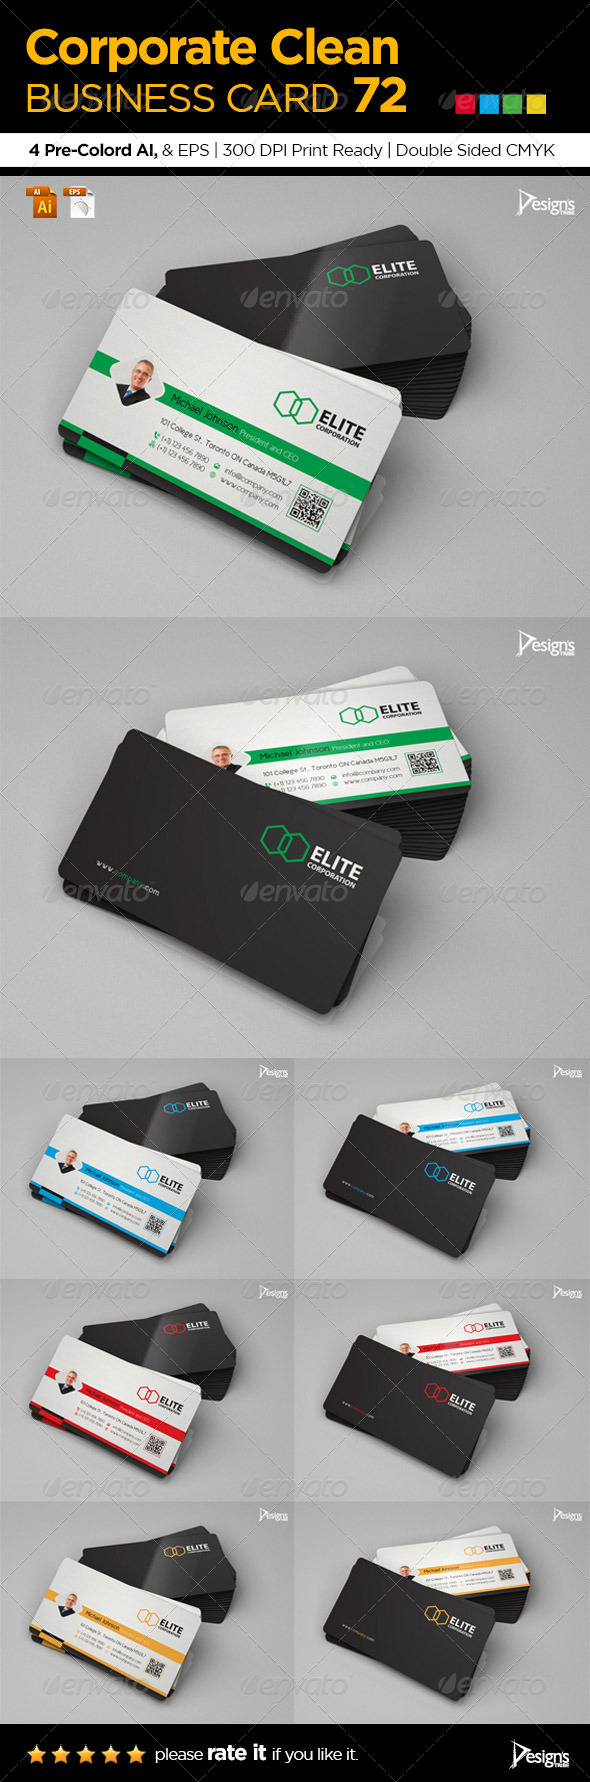 Corporate Clean Business Card 72 - Corporate Business Cards